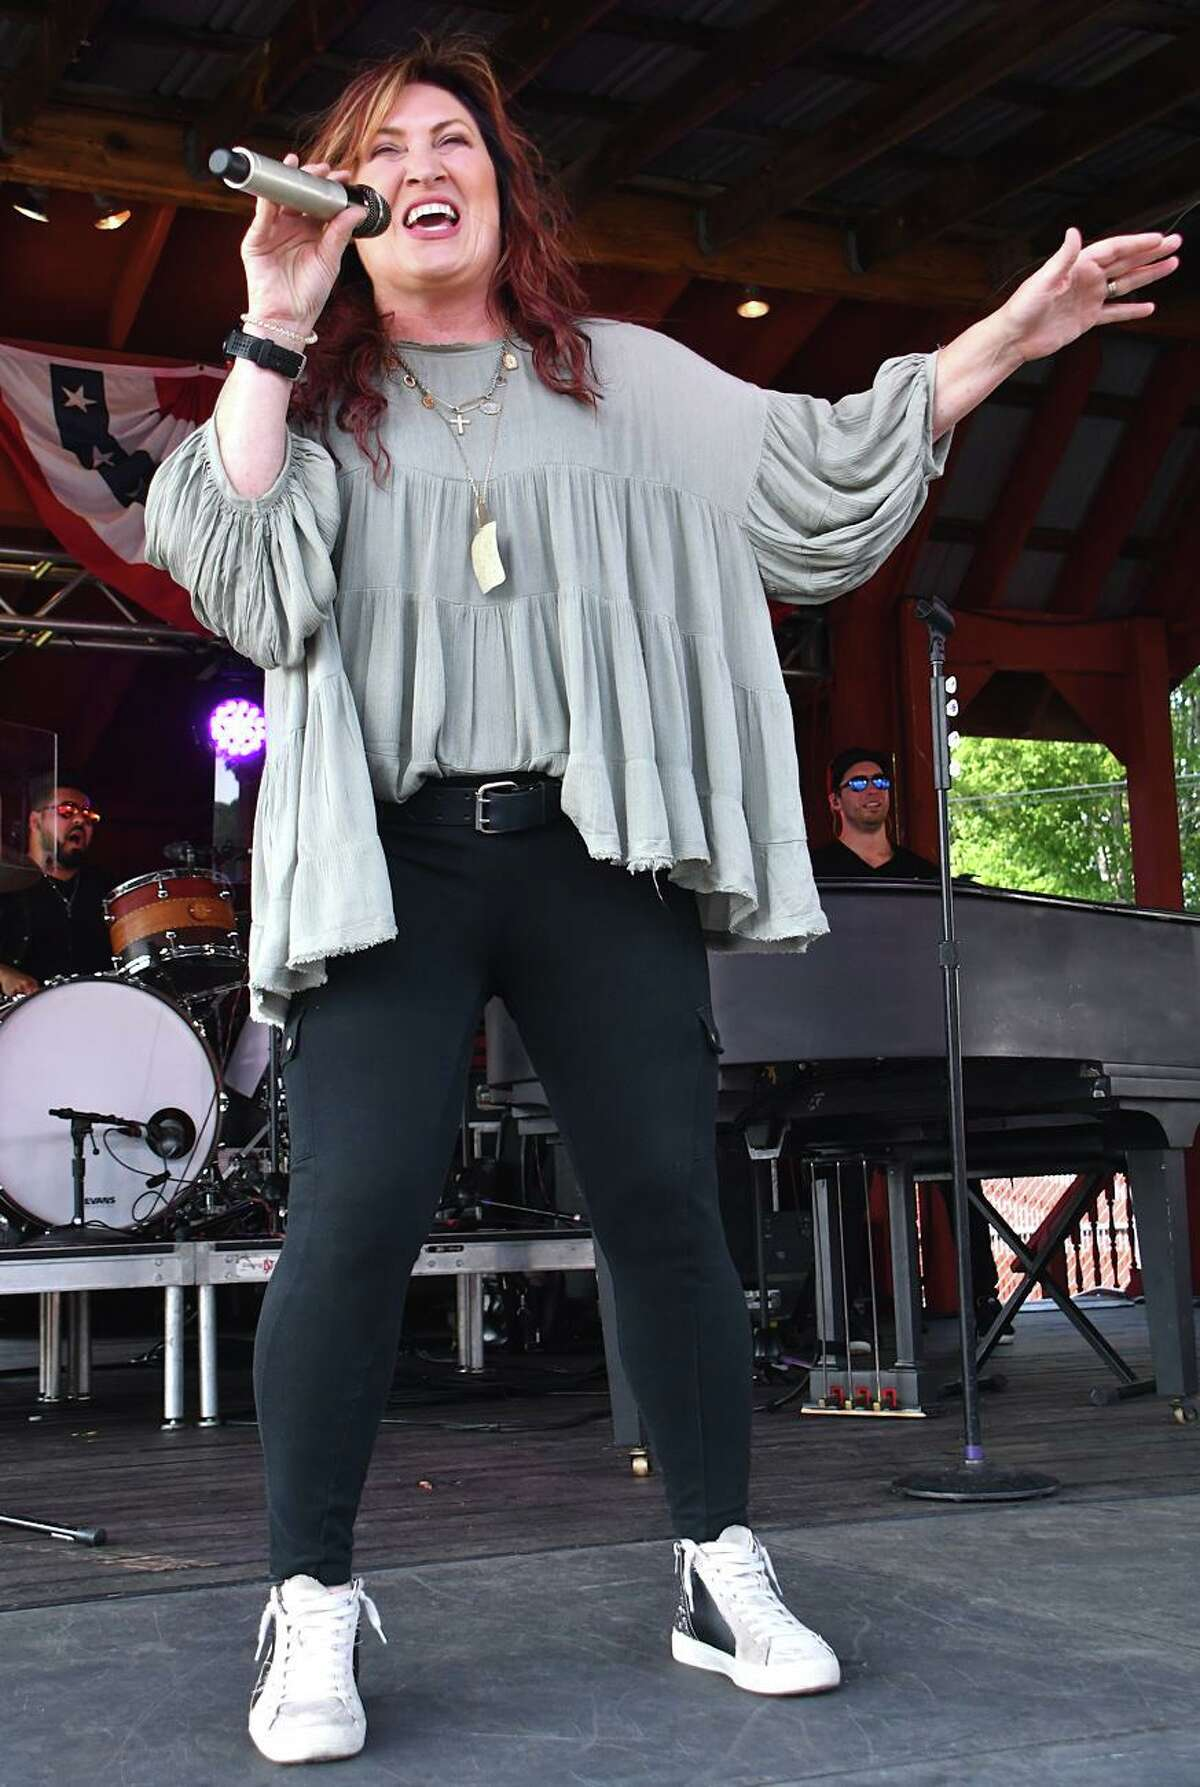 Singer, songwriter and guitarist Jo Dee Messina is shown performing on stage during her Sept. 12 concert at the Hebron Fairgrounds, Hebron. She has charted six number one singles on the Billboard country music charts. She has been honored by the Country Music Association and the Academy of Country Music, and has been nominated for two Grammy Awards. To learn more you can visit www.jodeemessina.com